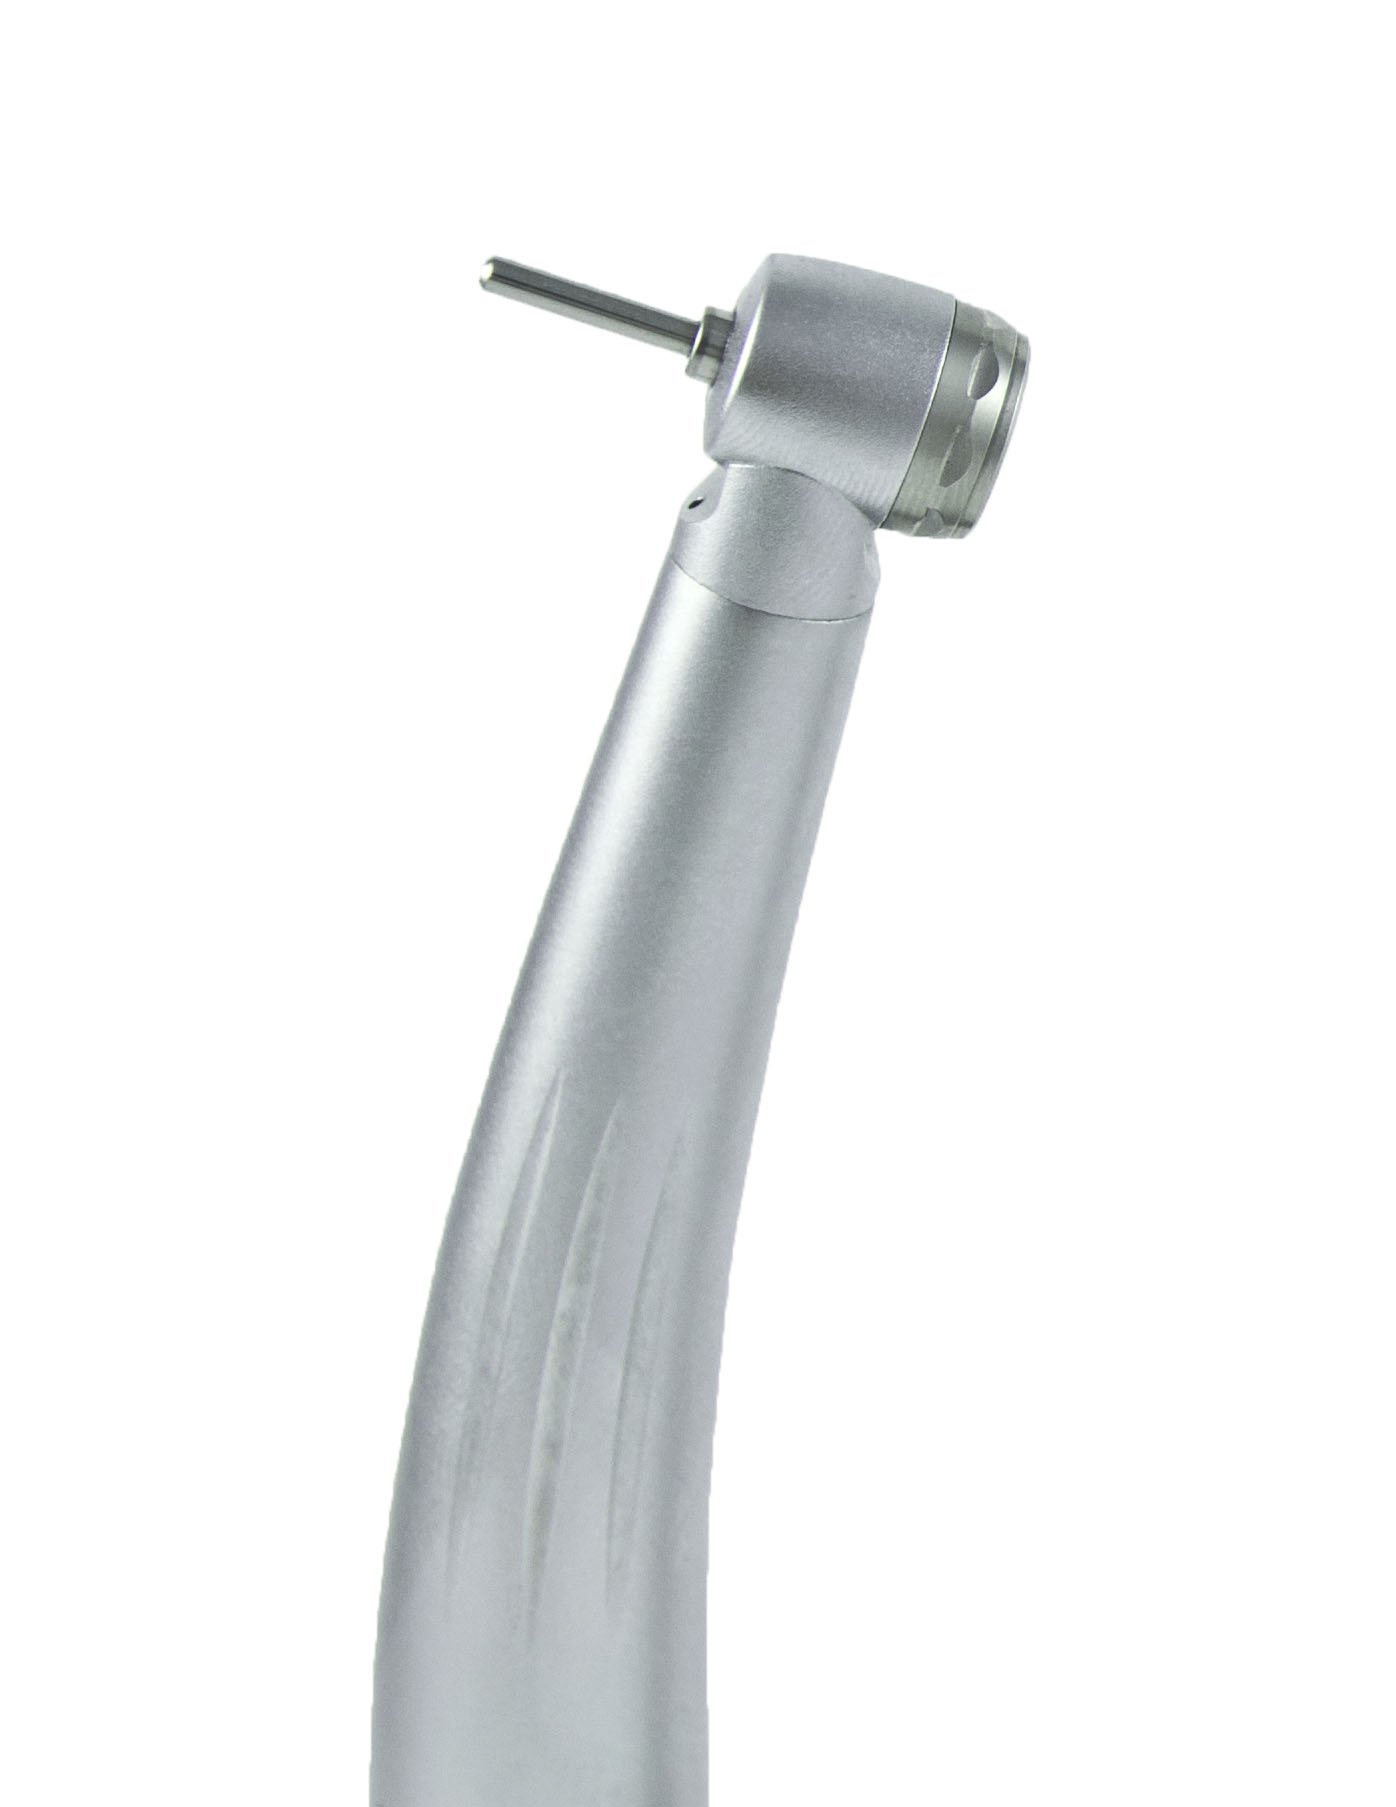 Prophy Magic PM-MAMH Pedo Magic Air High Speed Handpiece by Prophy Magic